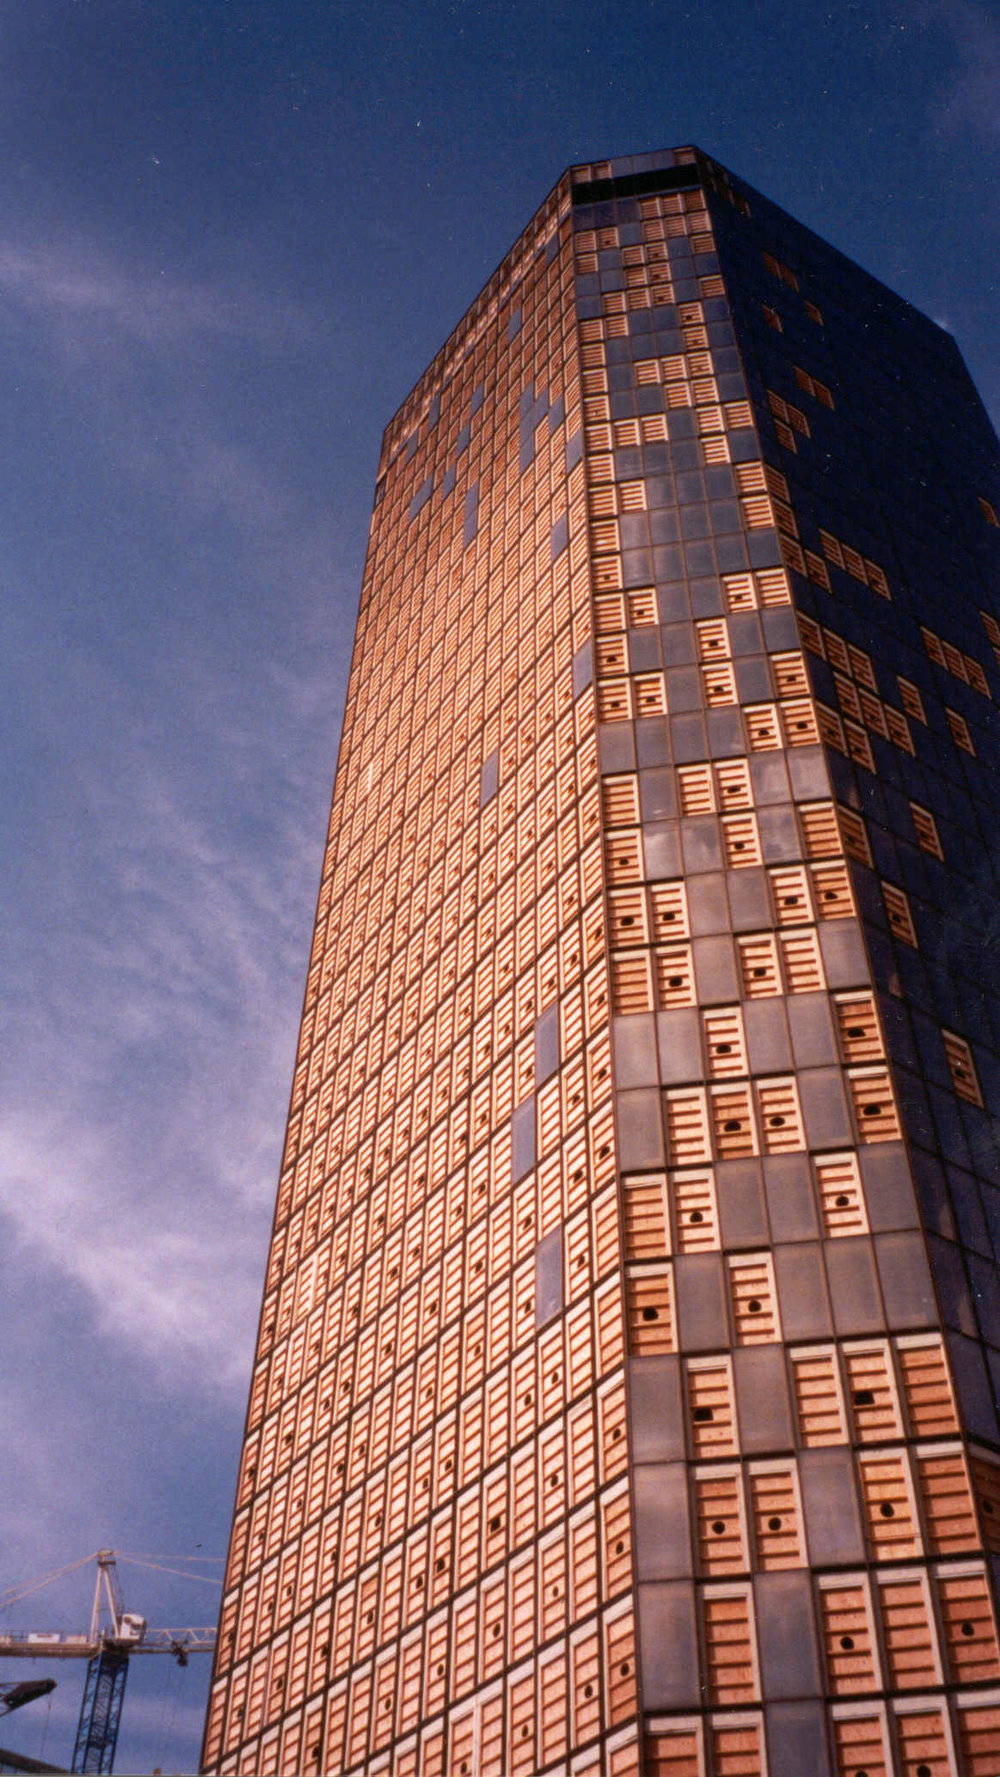 Bank One High rise located in Fortworth, Texas